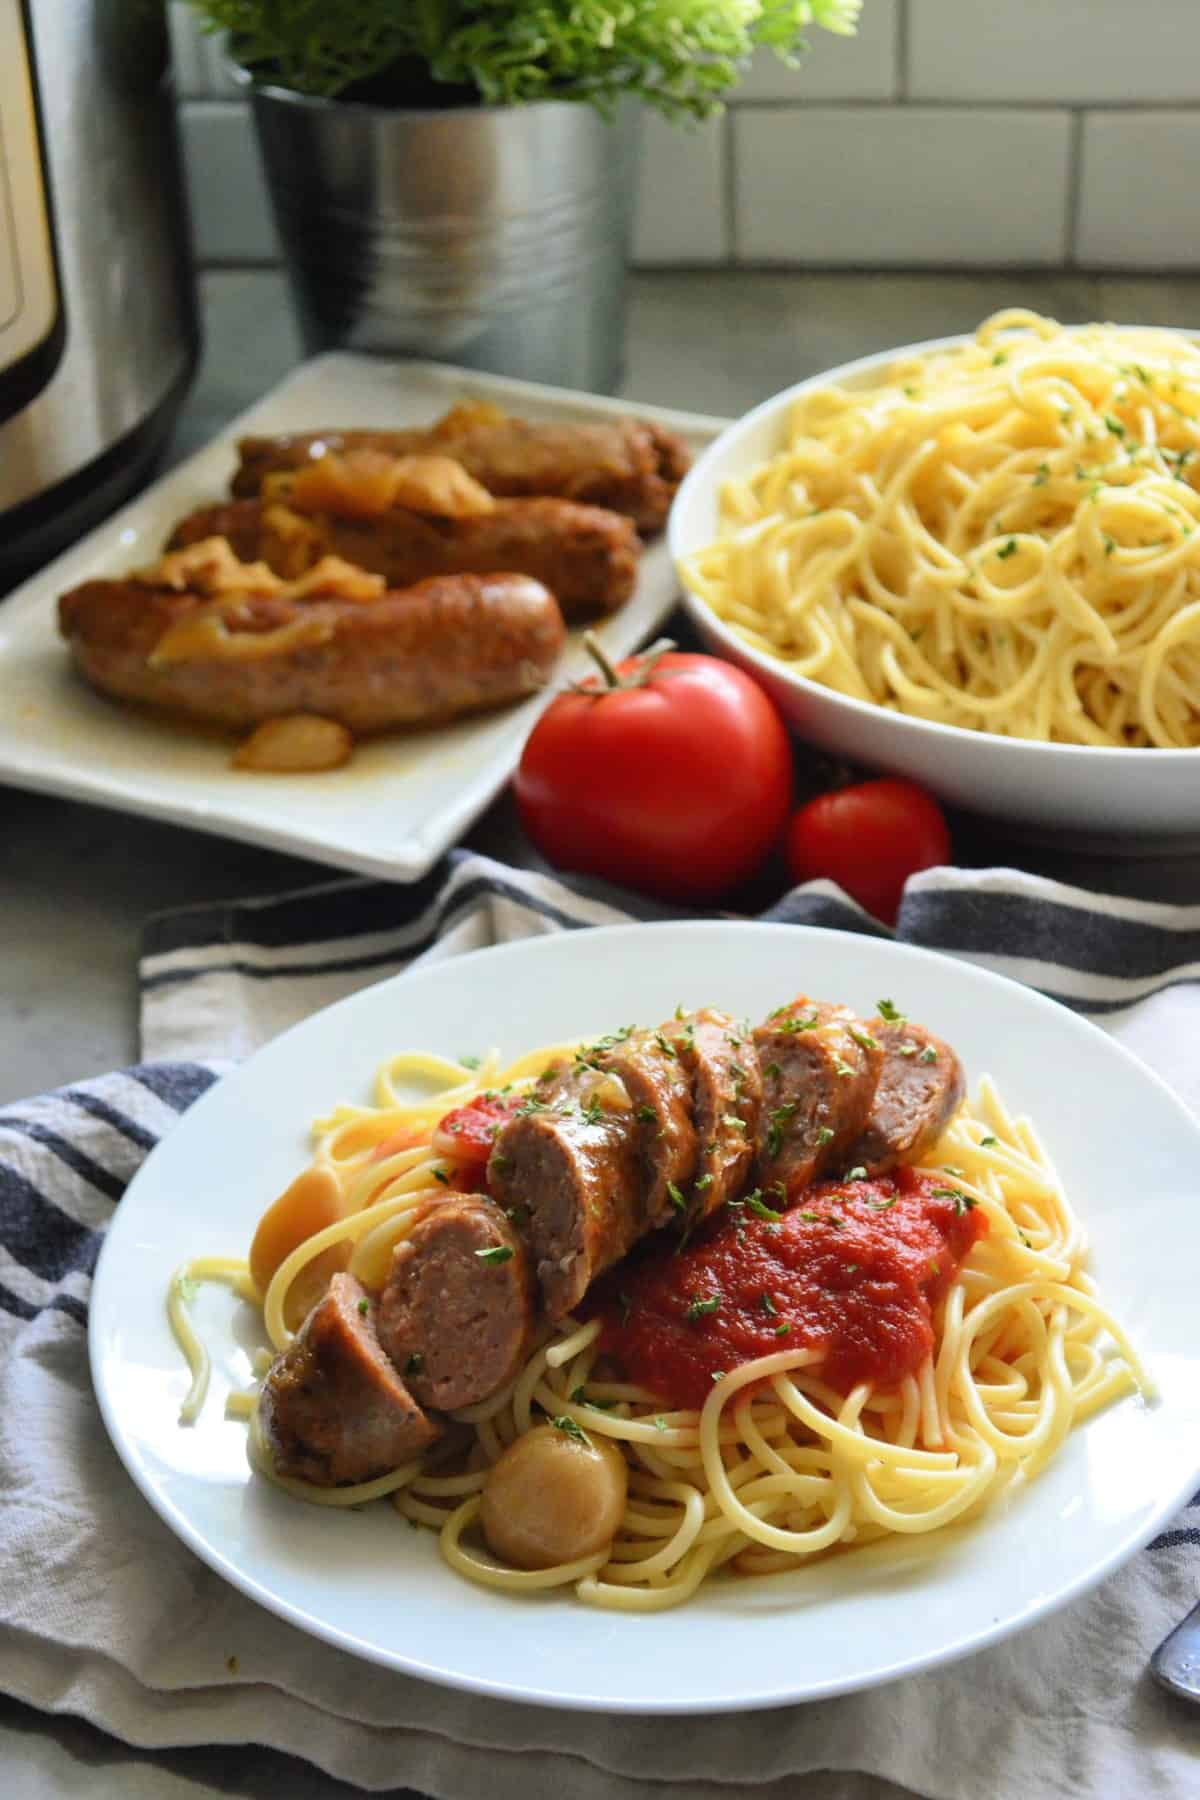 plated spaghetti with marinara and italian sausage in front of spaghetti bowl and sausage platter.